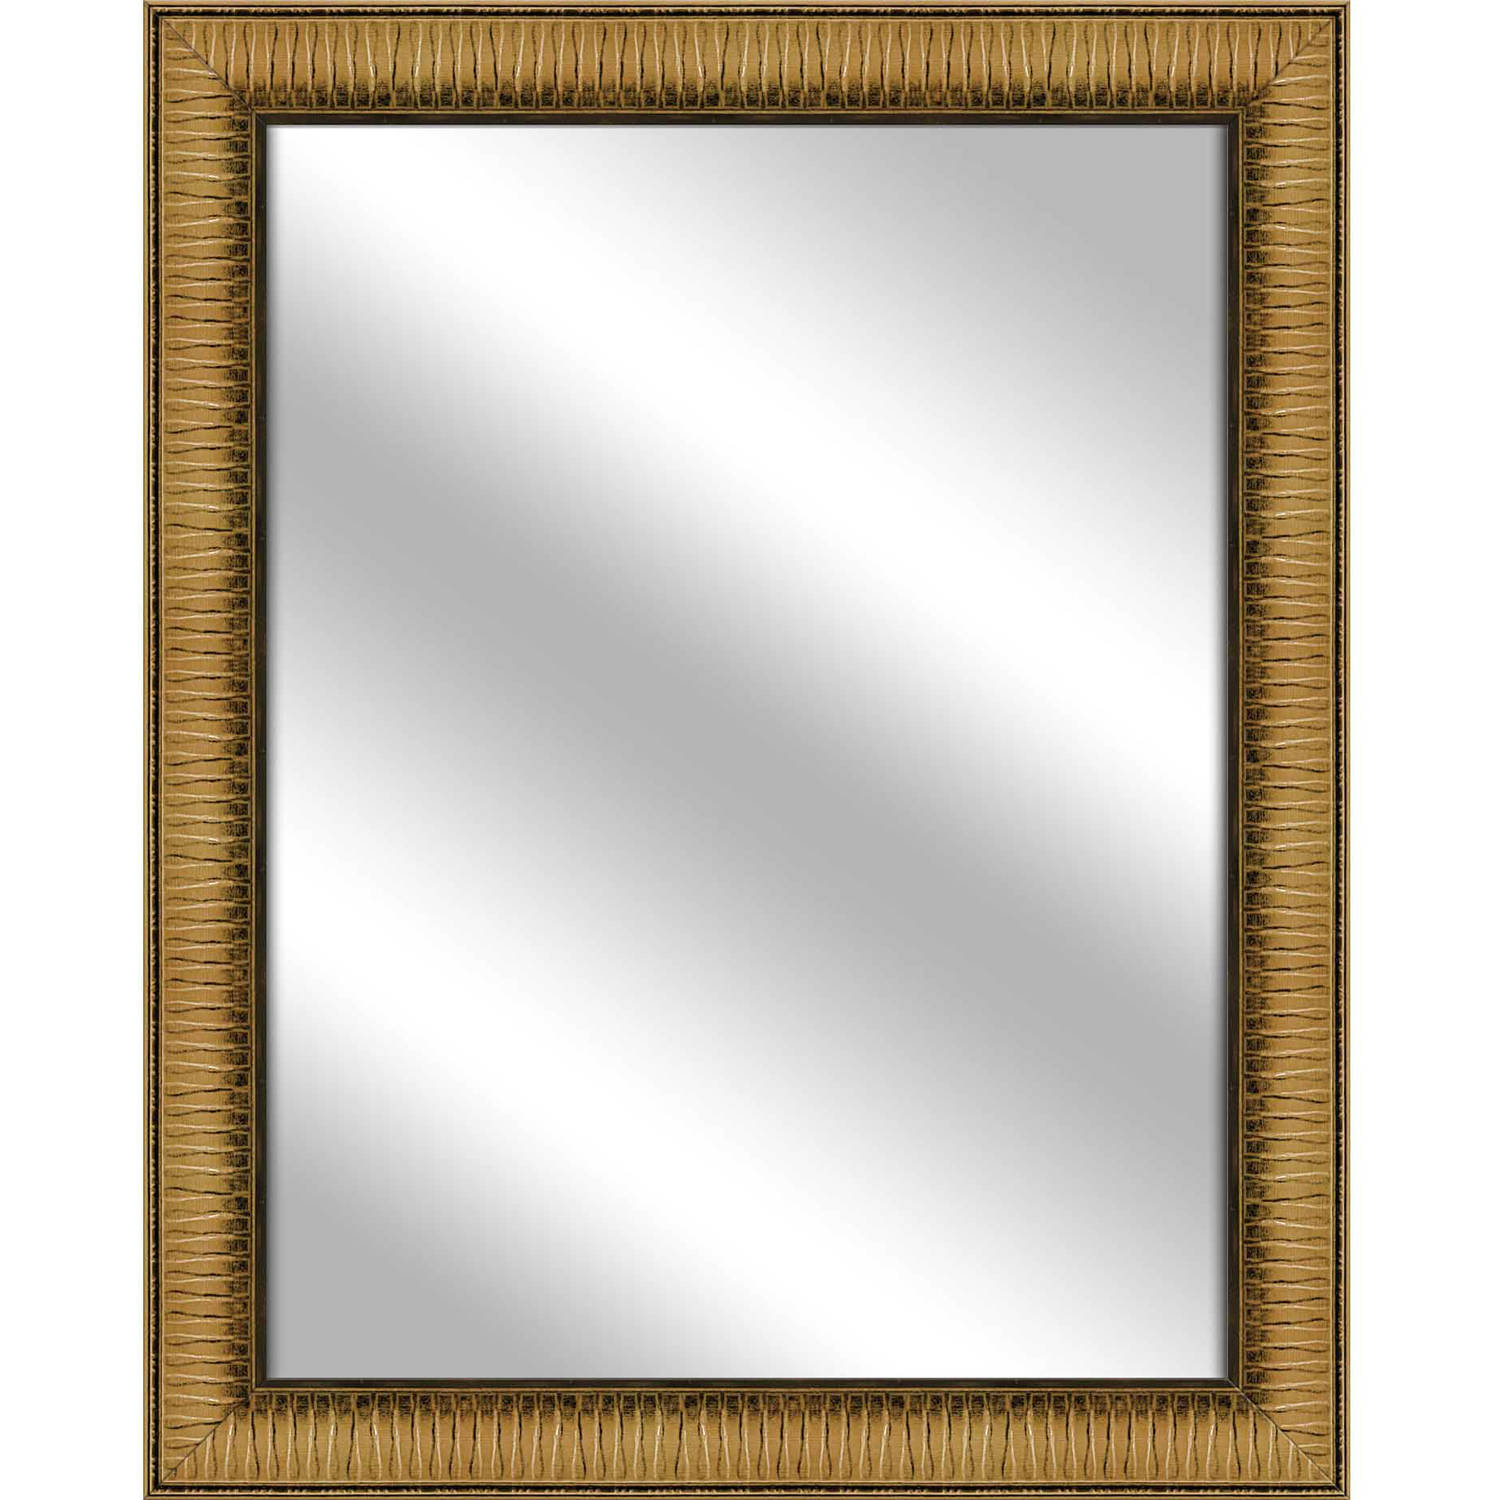 Vanity Mirror, Antique Gold, 26.375x32.375 by PTM Images